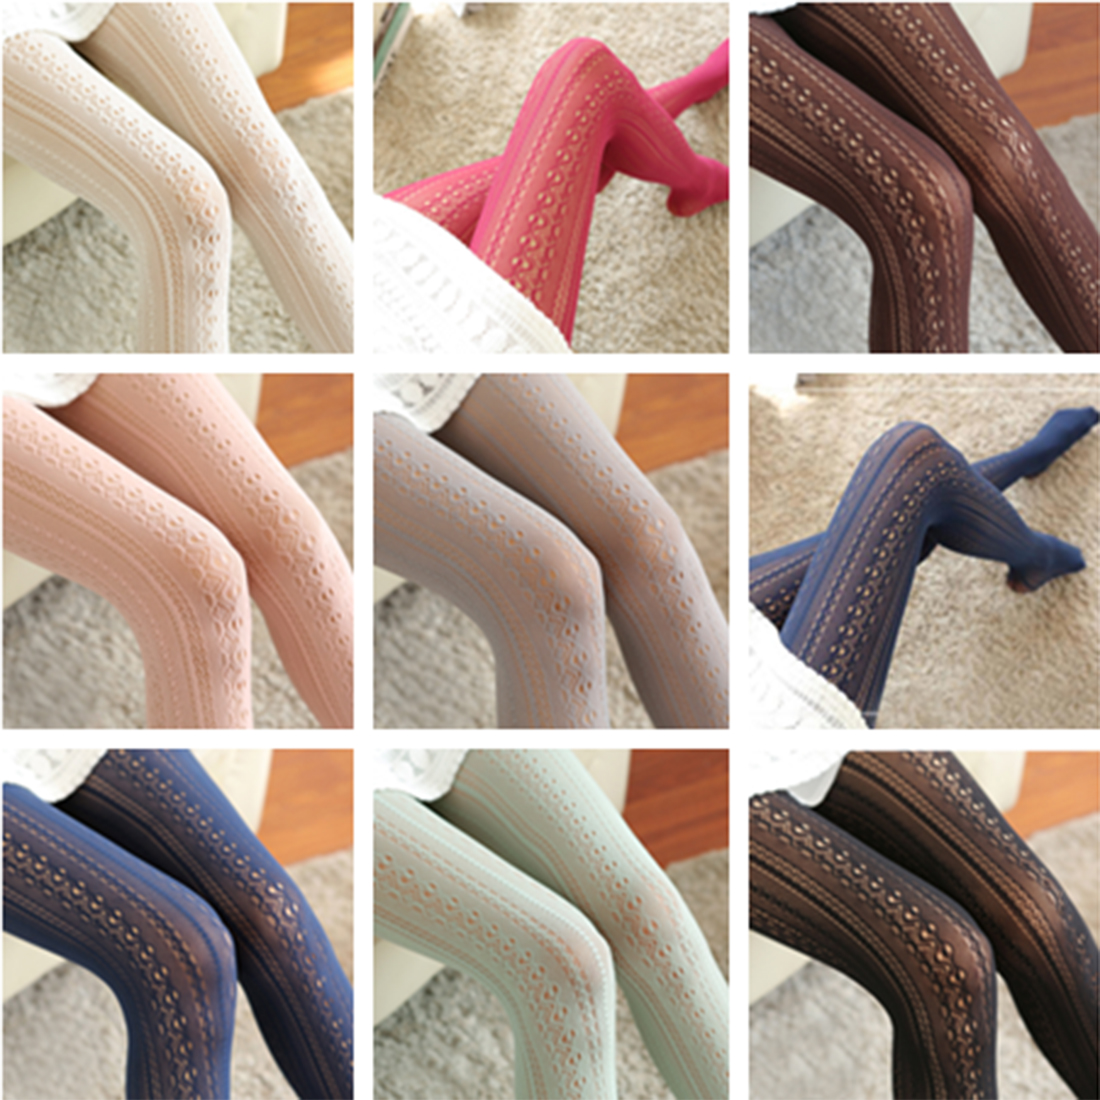 Elegant Design Hollow out lace bars in fishnet stockings sexy lace pantyhose sweet women girls tights